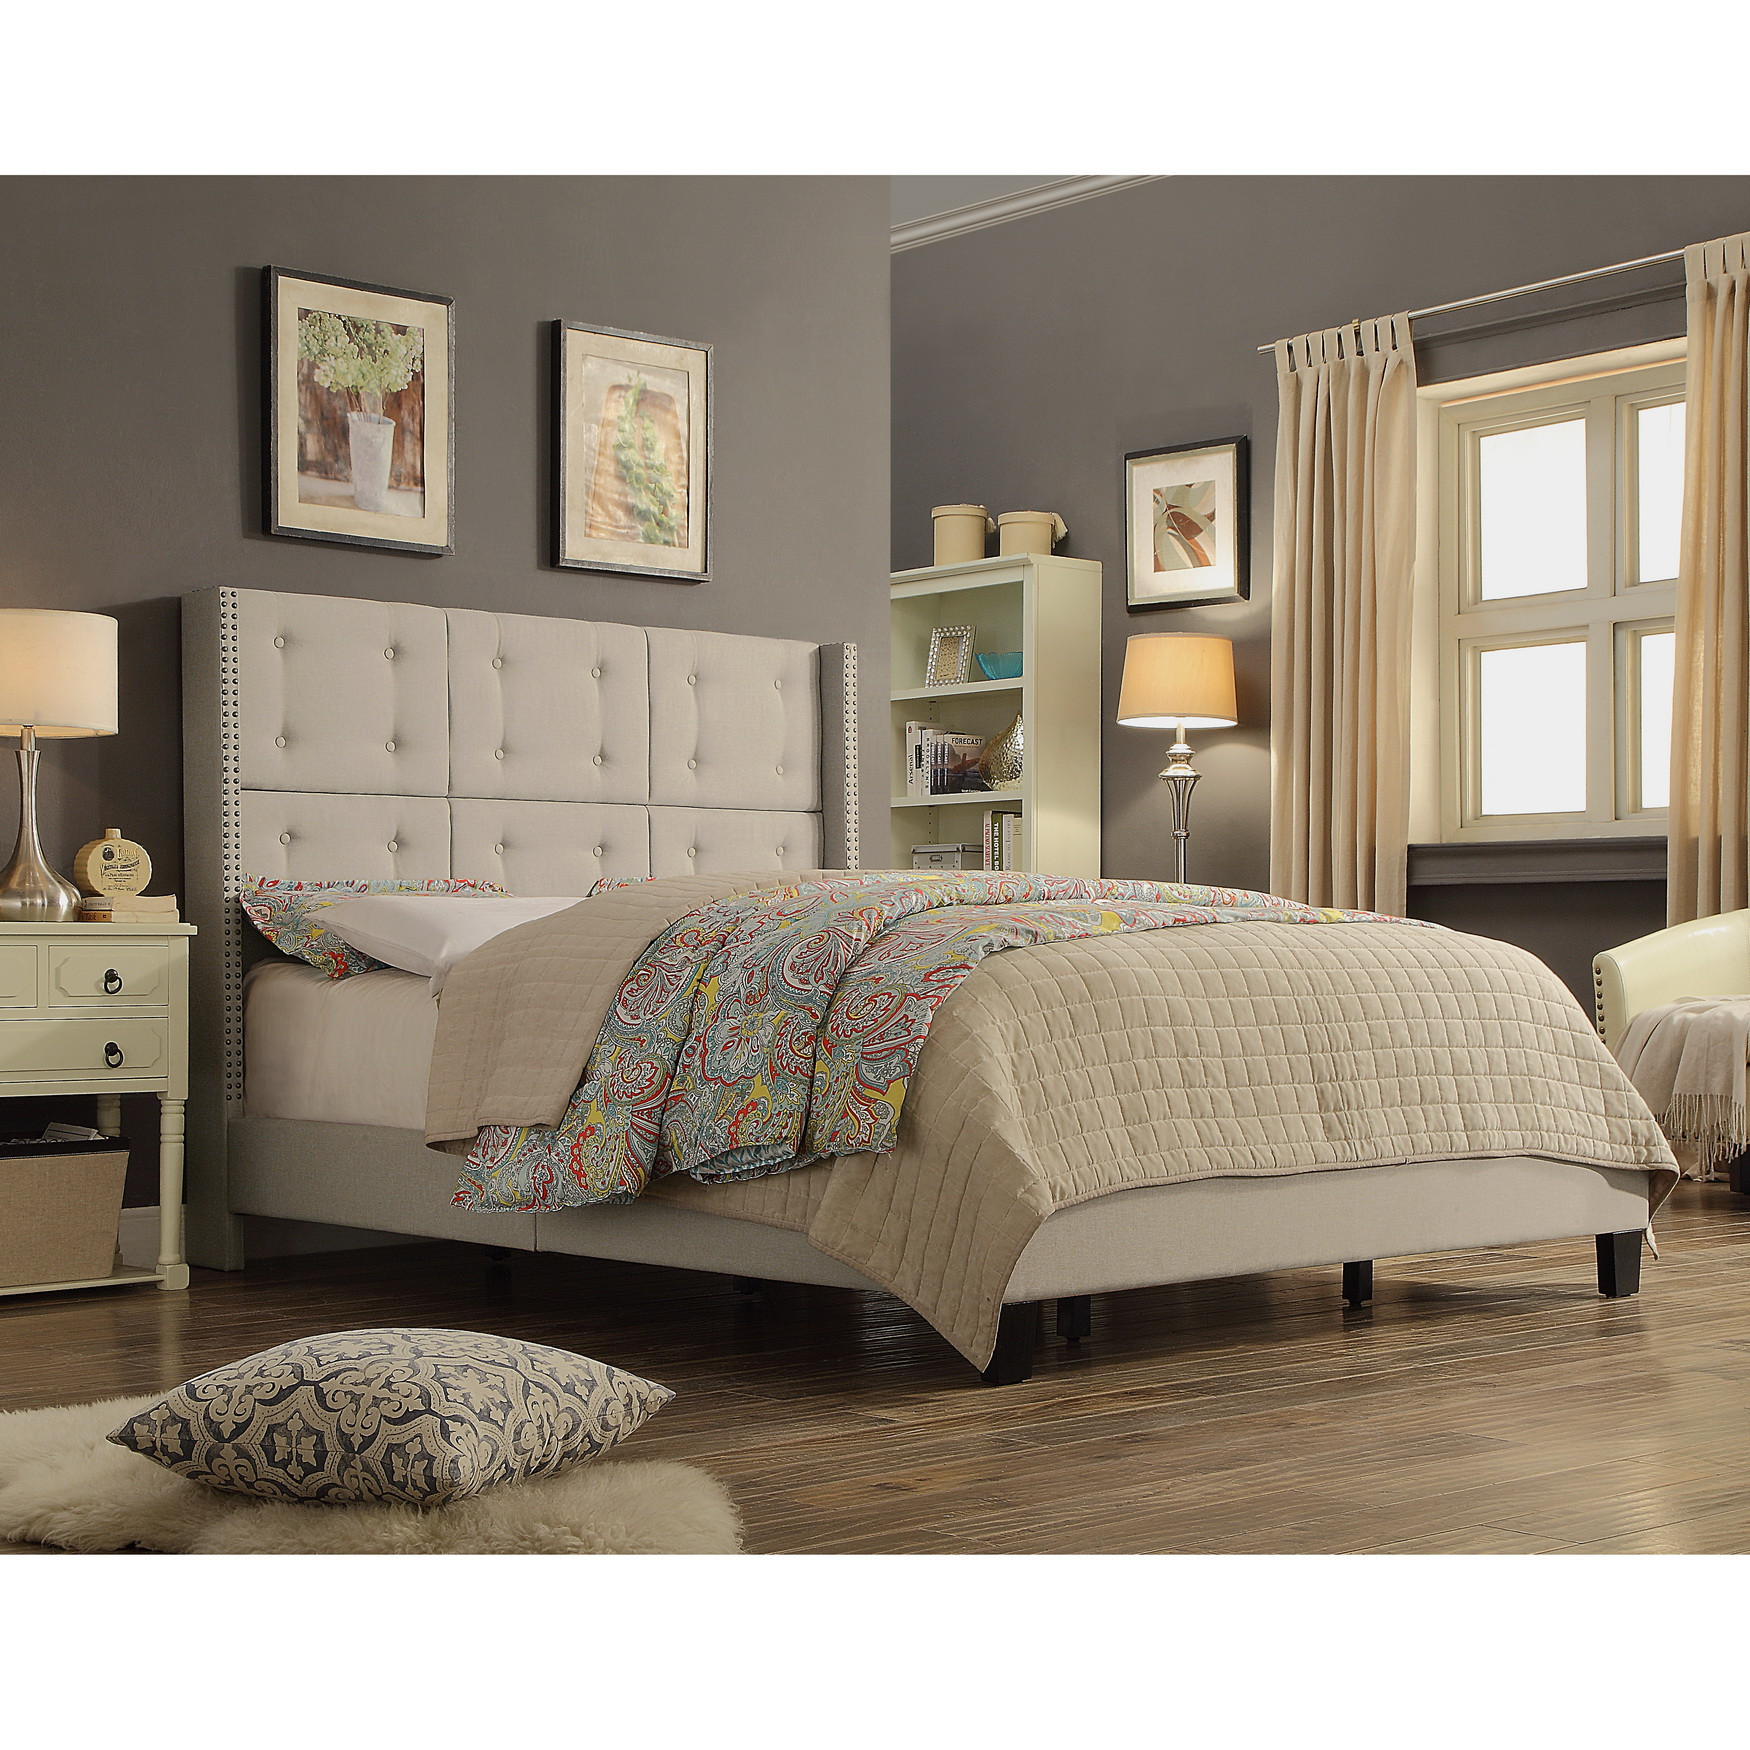 Alton Furniture Ciosa Upholstered Button Tufted Panel Bed With Headboard and Wooden Slats, Multiple Colors/Sizes